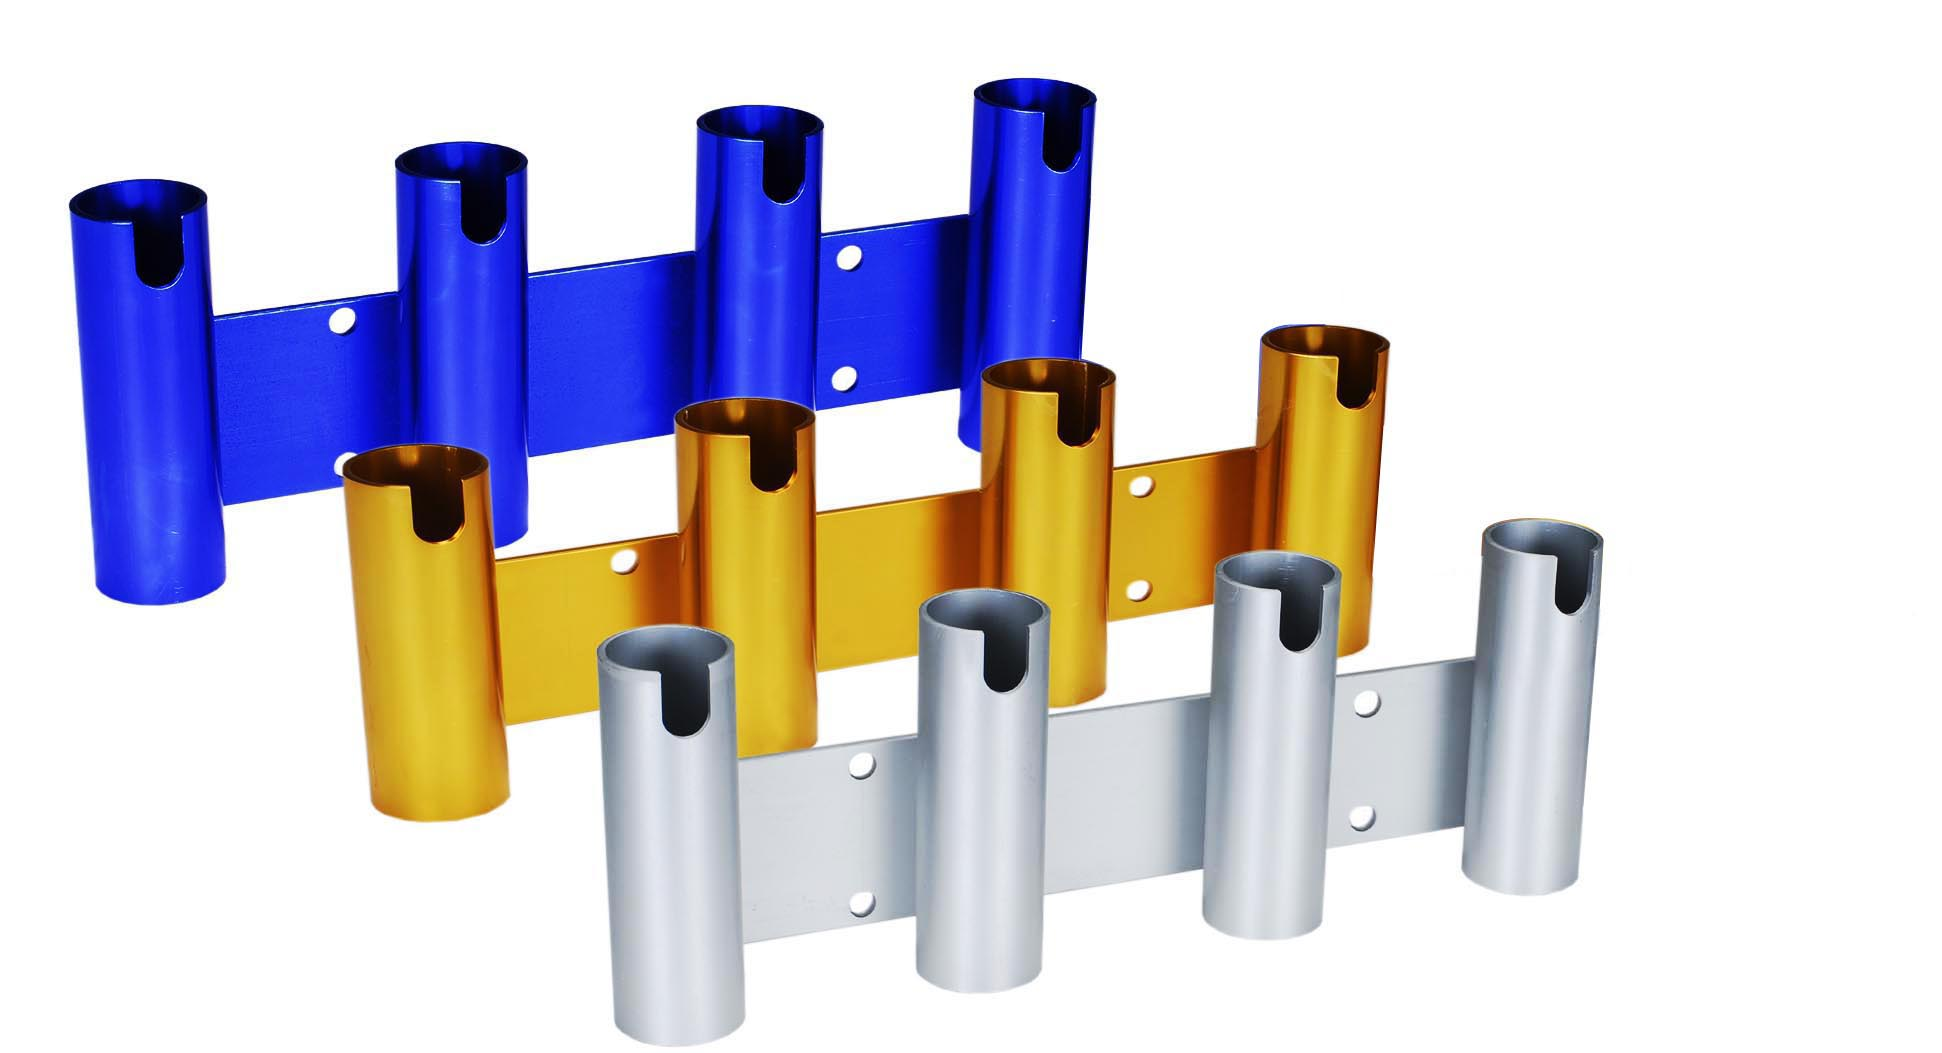 4way rod holder-059.3.jpg